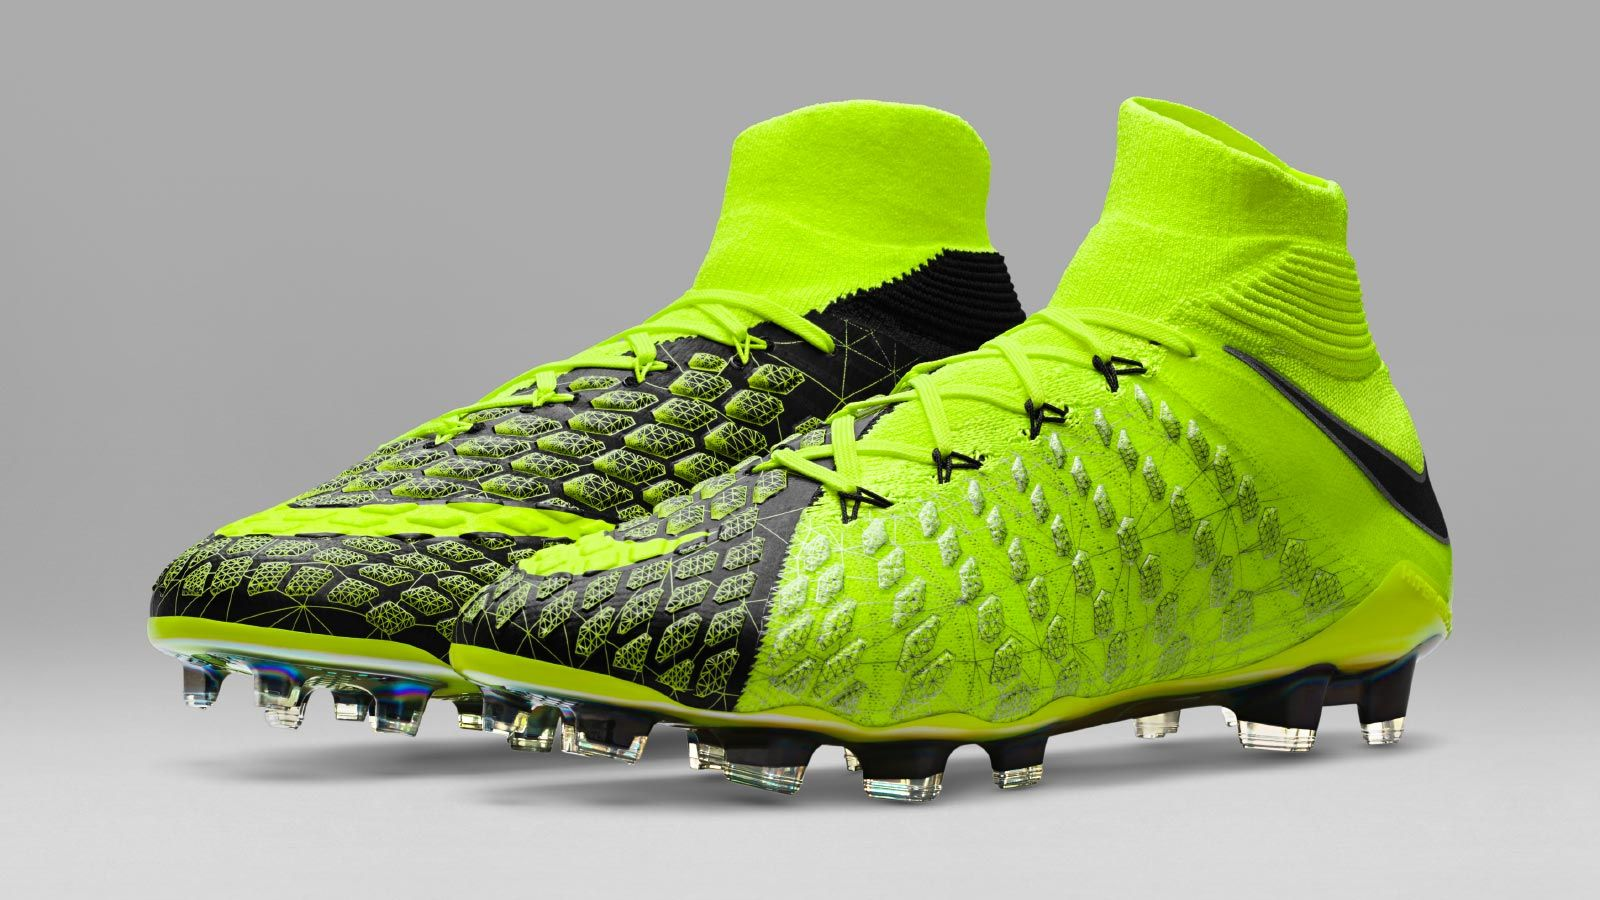 c7b0a8ab1 The limited-edition Nike Hypervenom Phantom III EA Sports boots introduce a  striking design